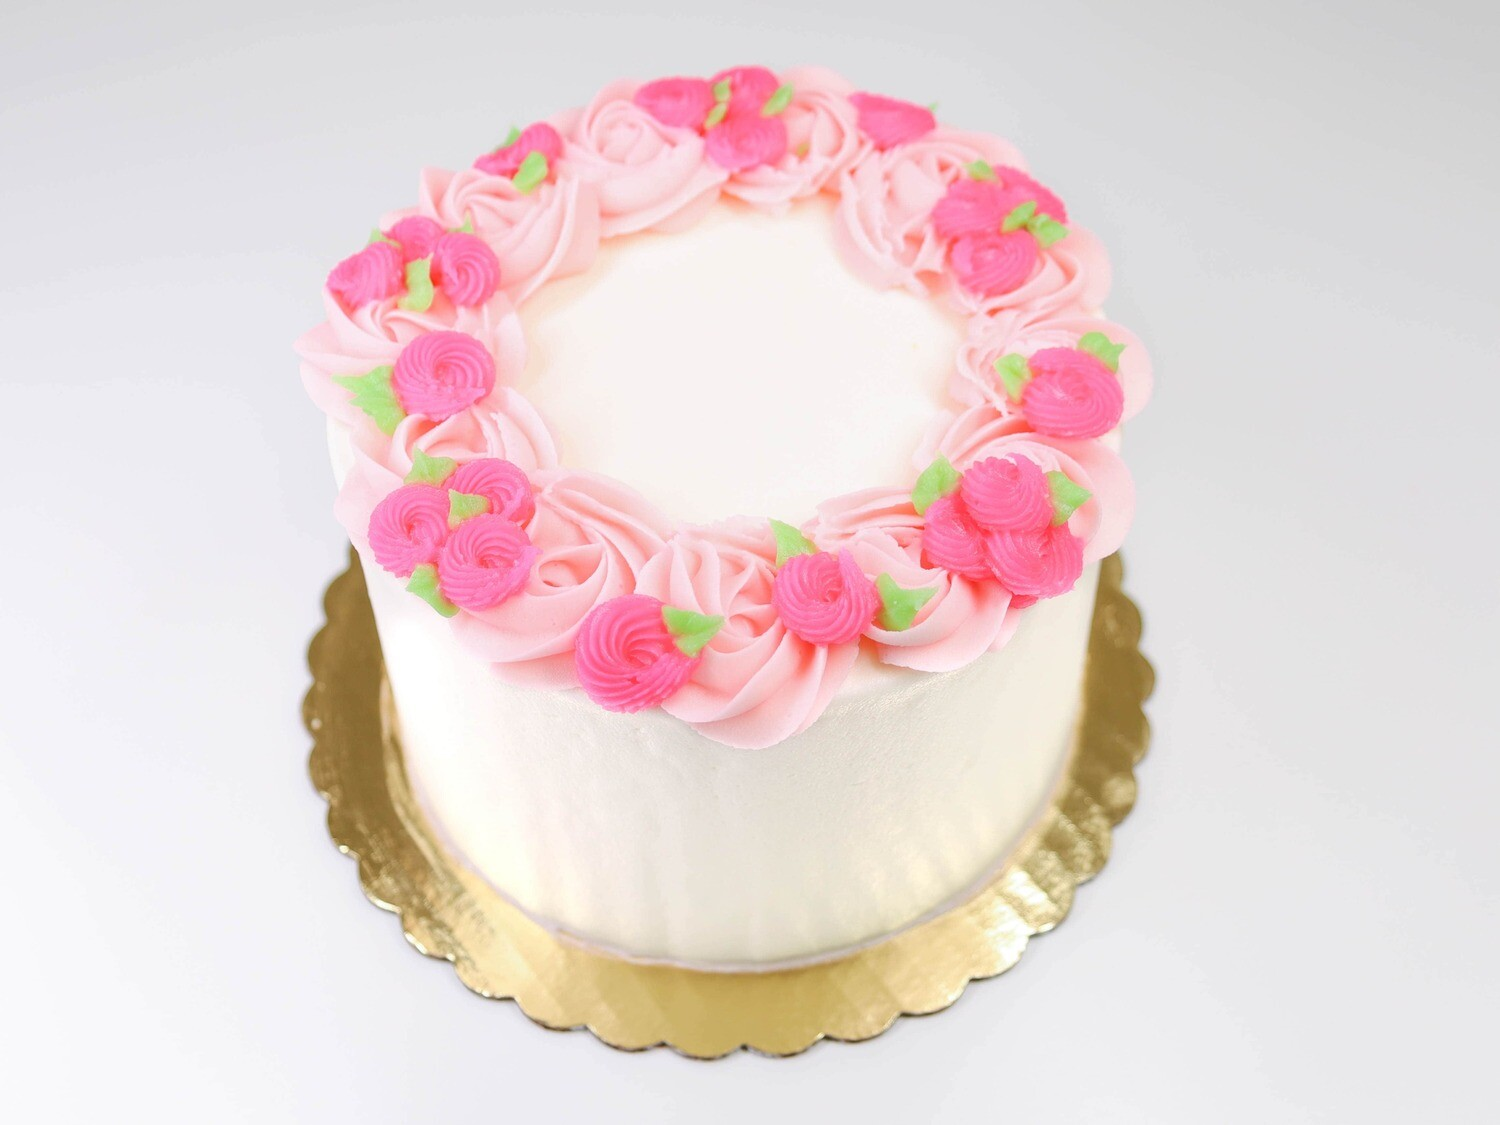 Wreath Of Flowers Cake